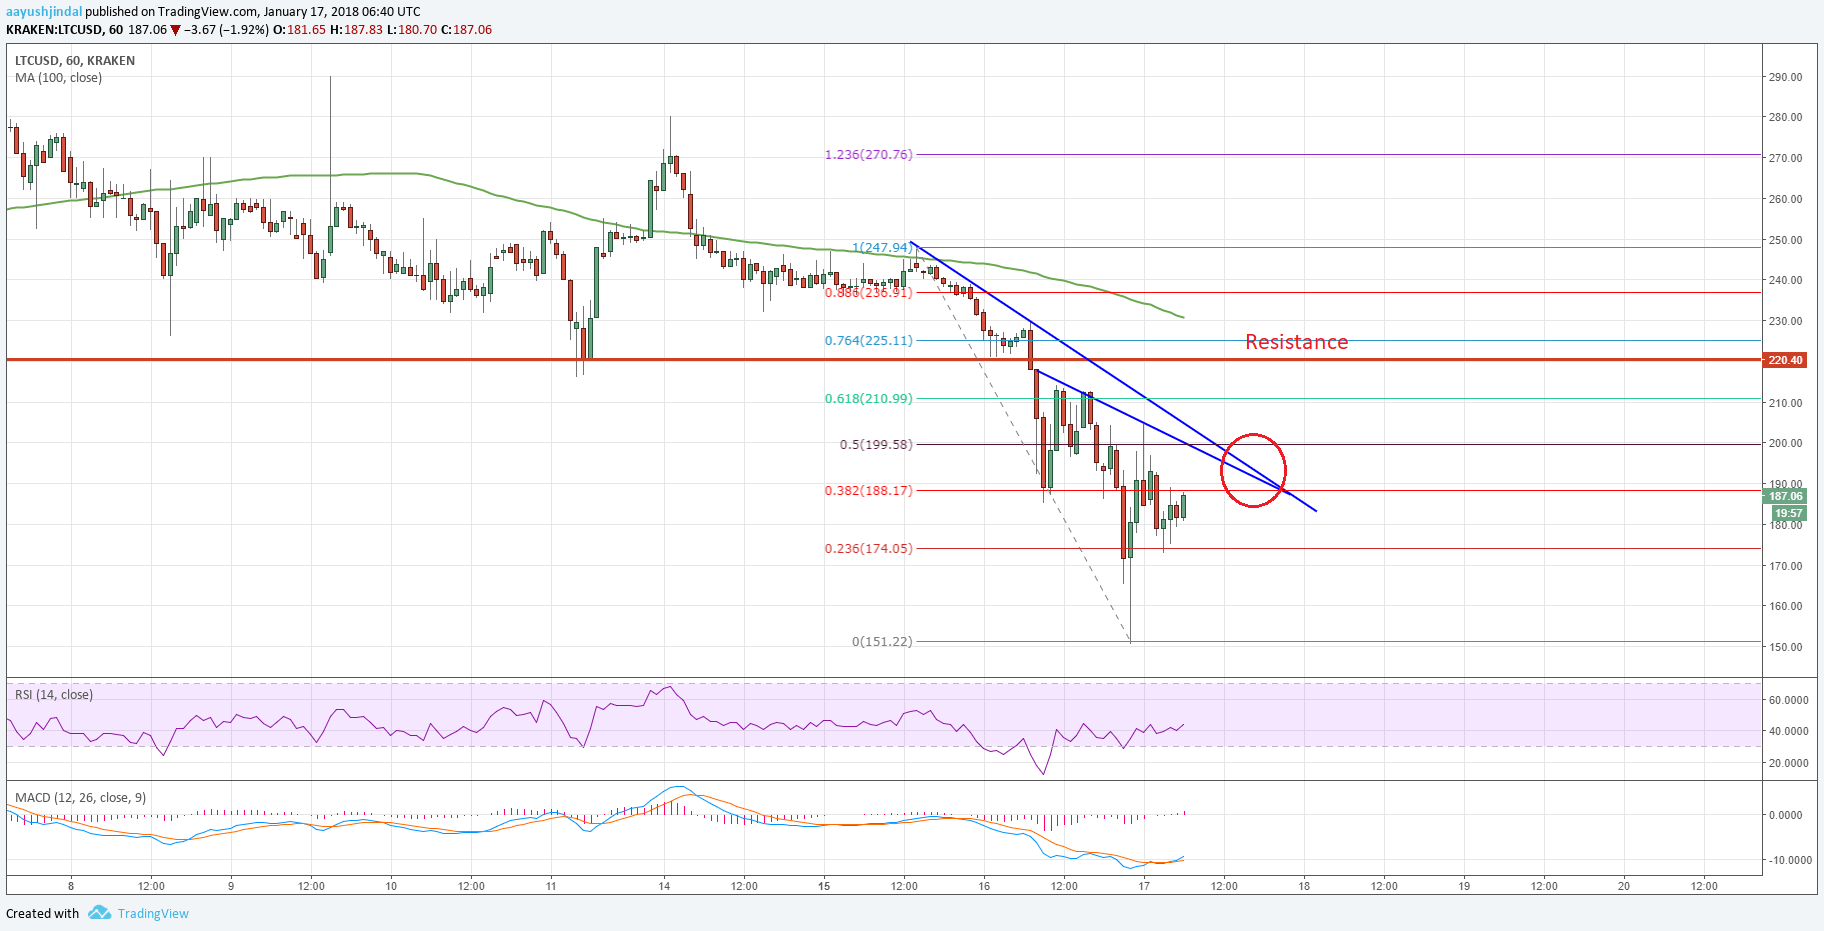 Litecoin Price Analysis: LTC/USD Slides Toward $150